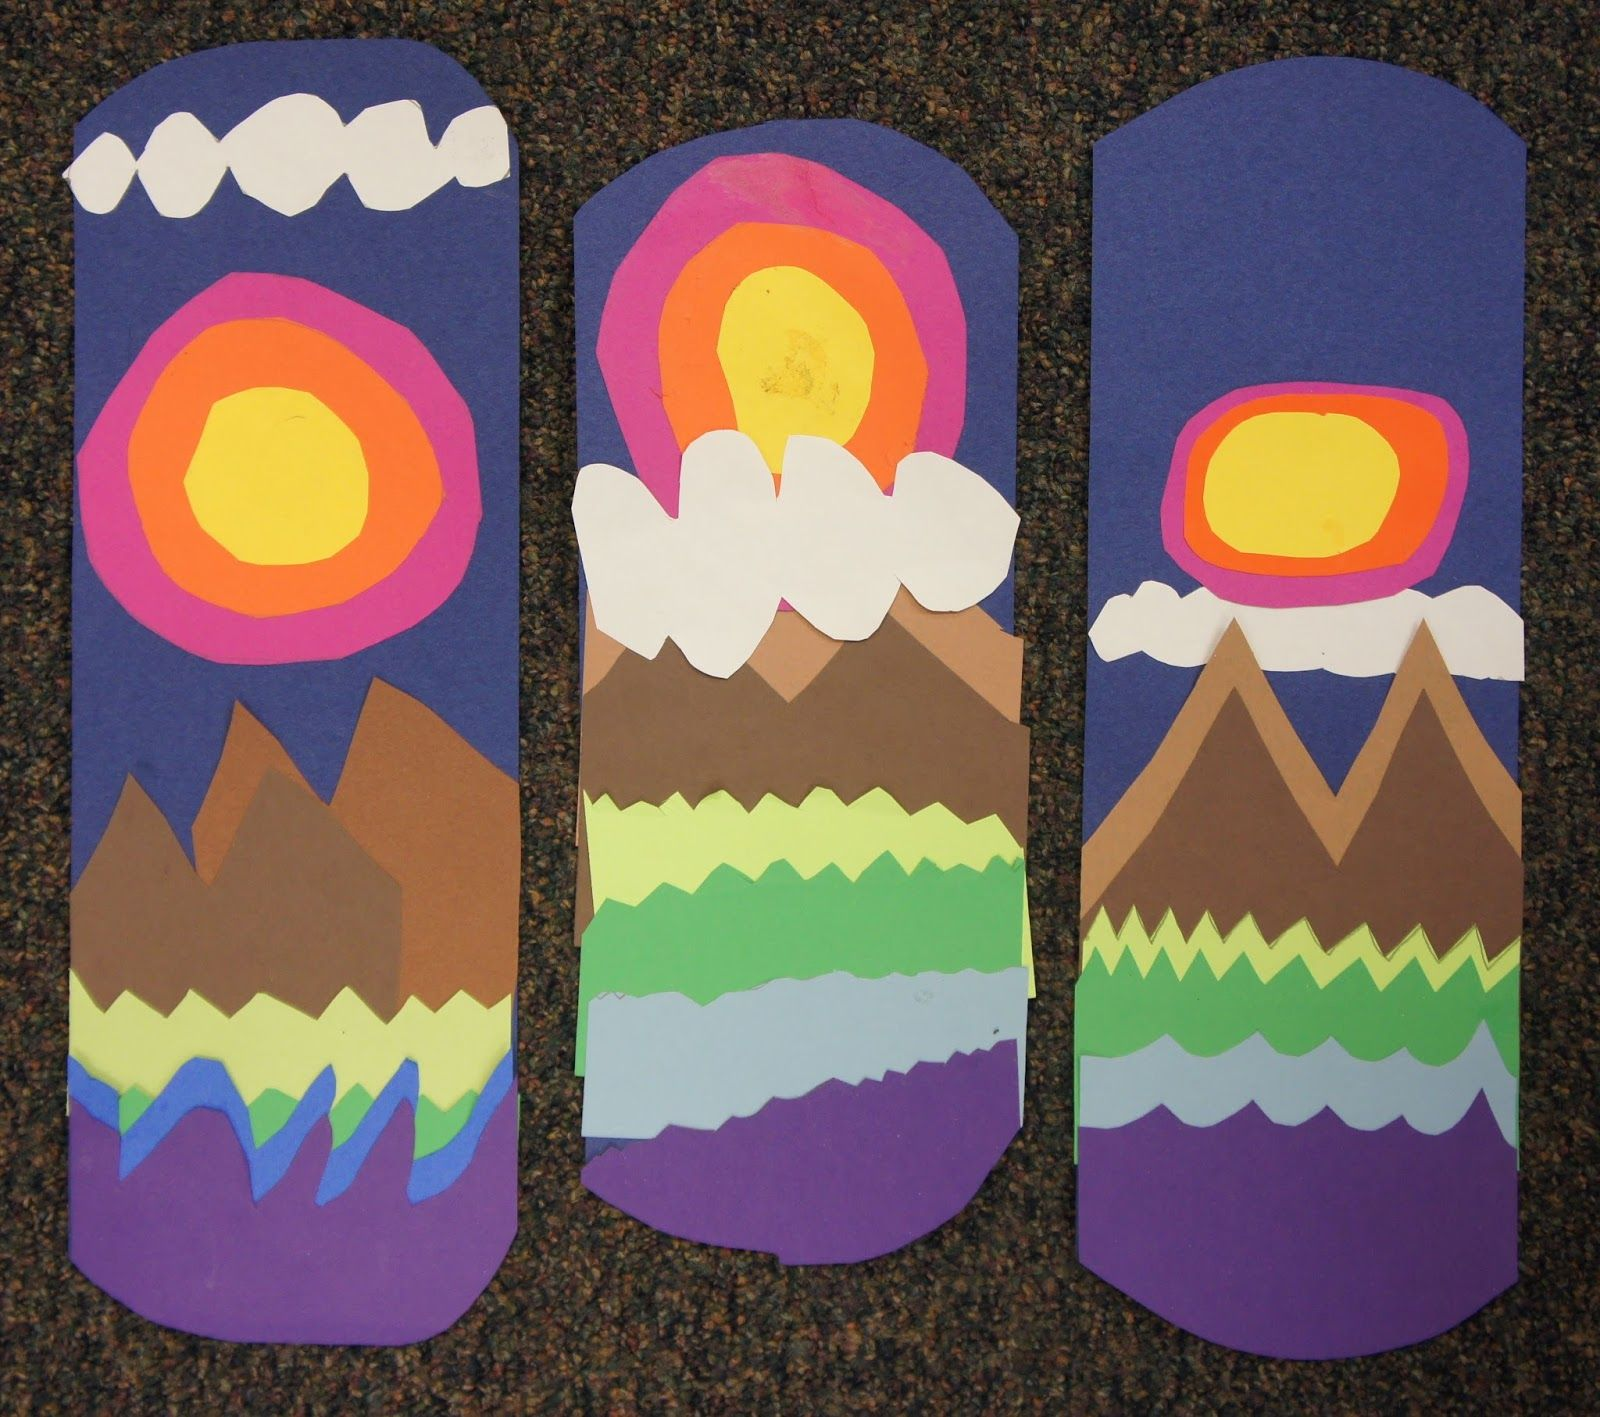 This Week The 2nd Graders Are Working With Collage And Landscape The Lesson Is Inspired By A